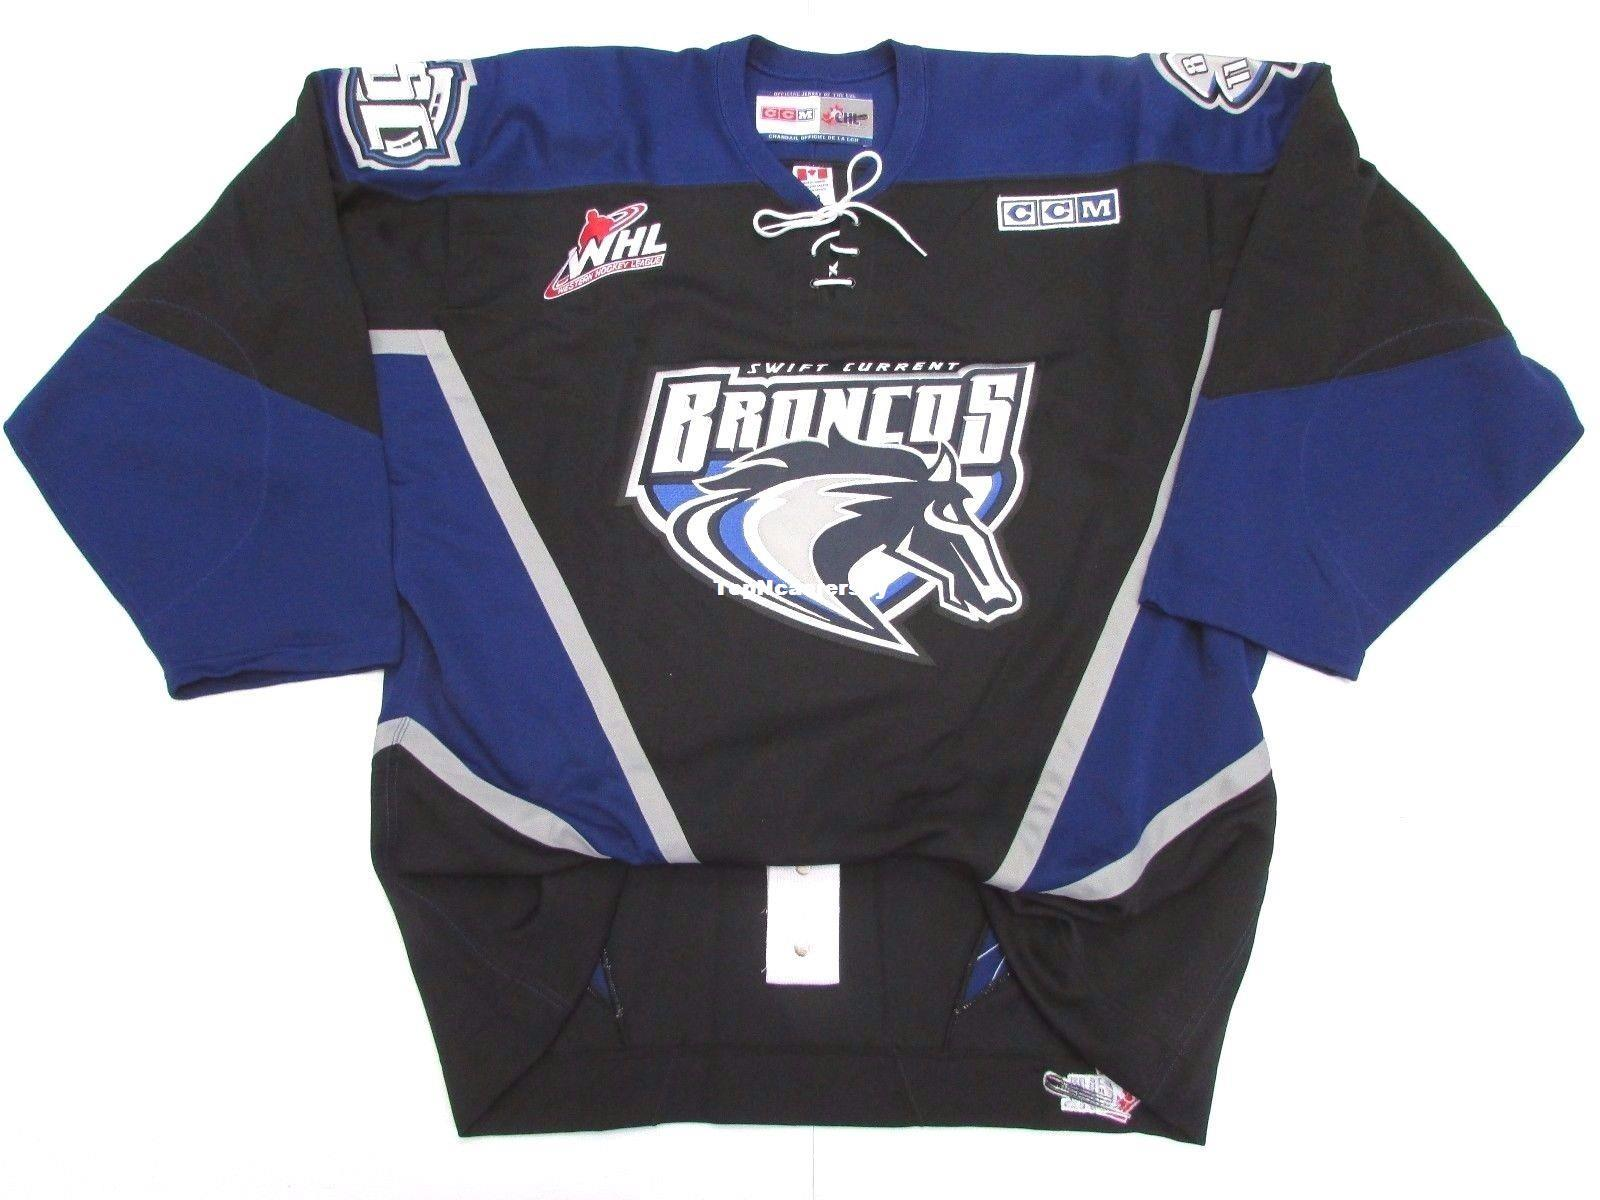 SWIFT CURRENT BRONCOS AUTHENTIC WHL BLACK PRO CCM HOCKEY JERSEY Ccm Hockey  Jerseys WHL Hockey Jersey Cheap Hockey Jerseys Online with  80.48 Piece on  ... abbe7ed40